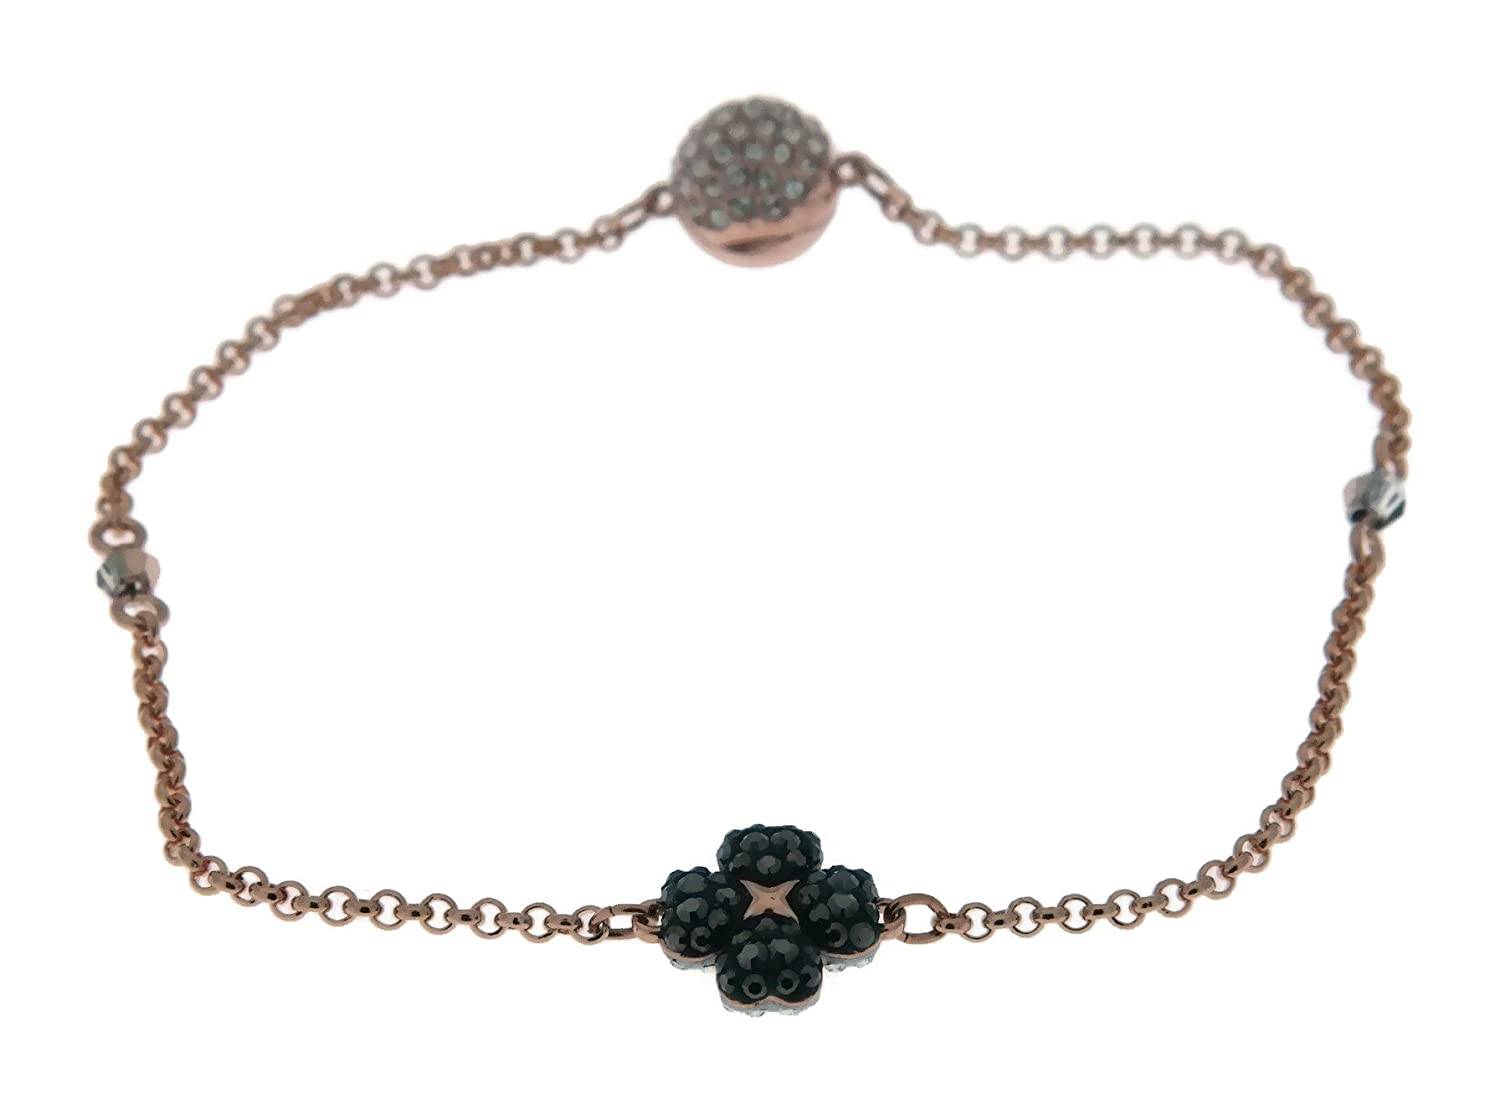 b79ef2731 Swarovski Remix Collection Clover Bracelet - 5375185: Amazon.com.au: Fashion